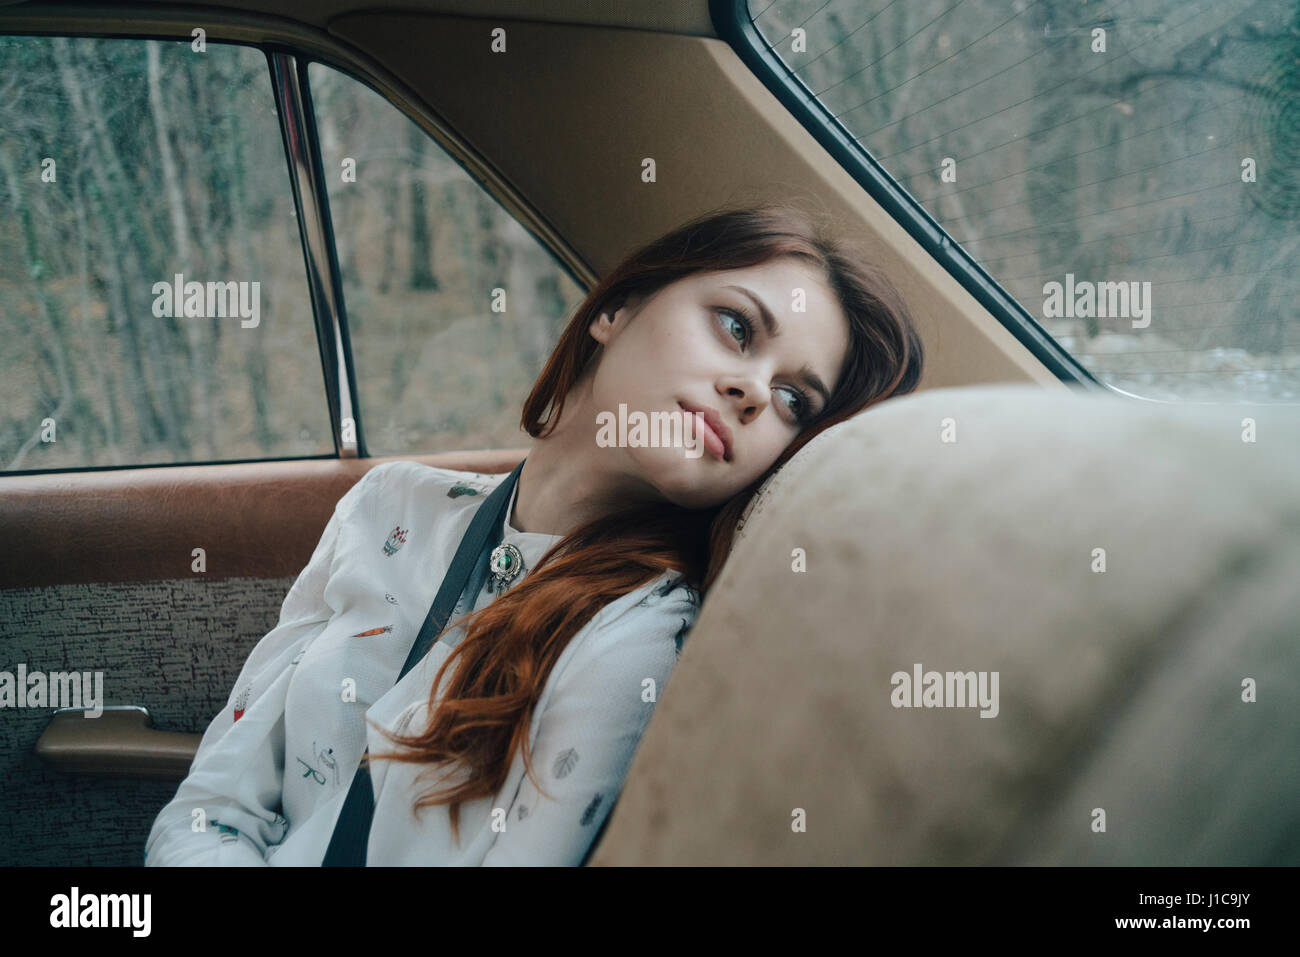 Caucasian woman in back seat of car looking out window - Stock Image